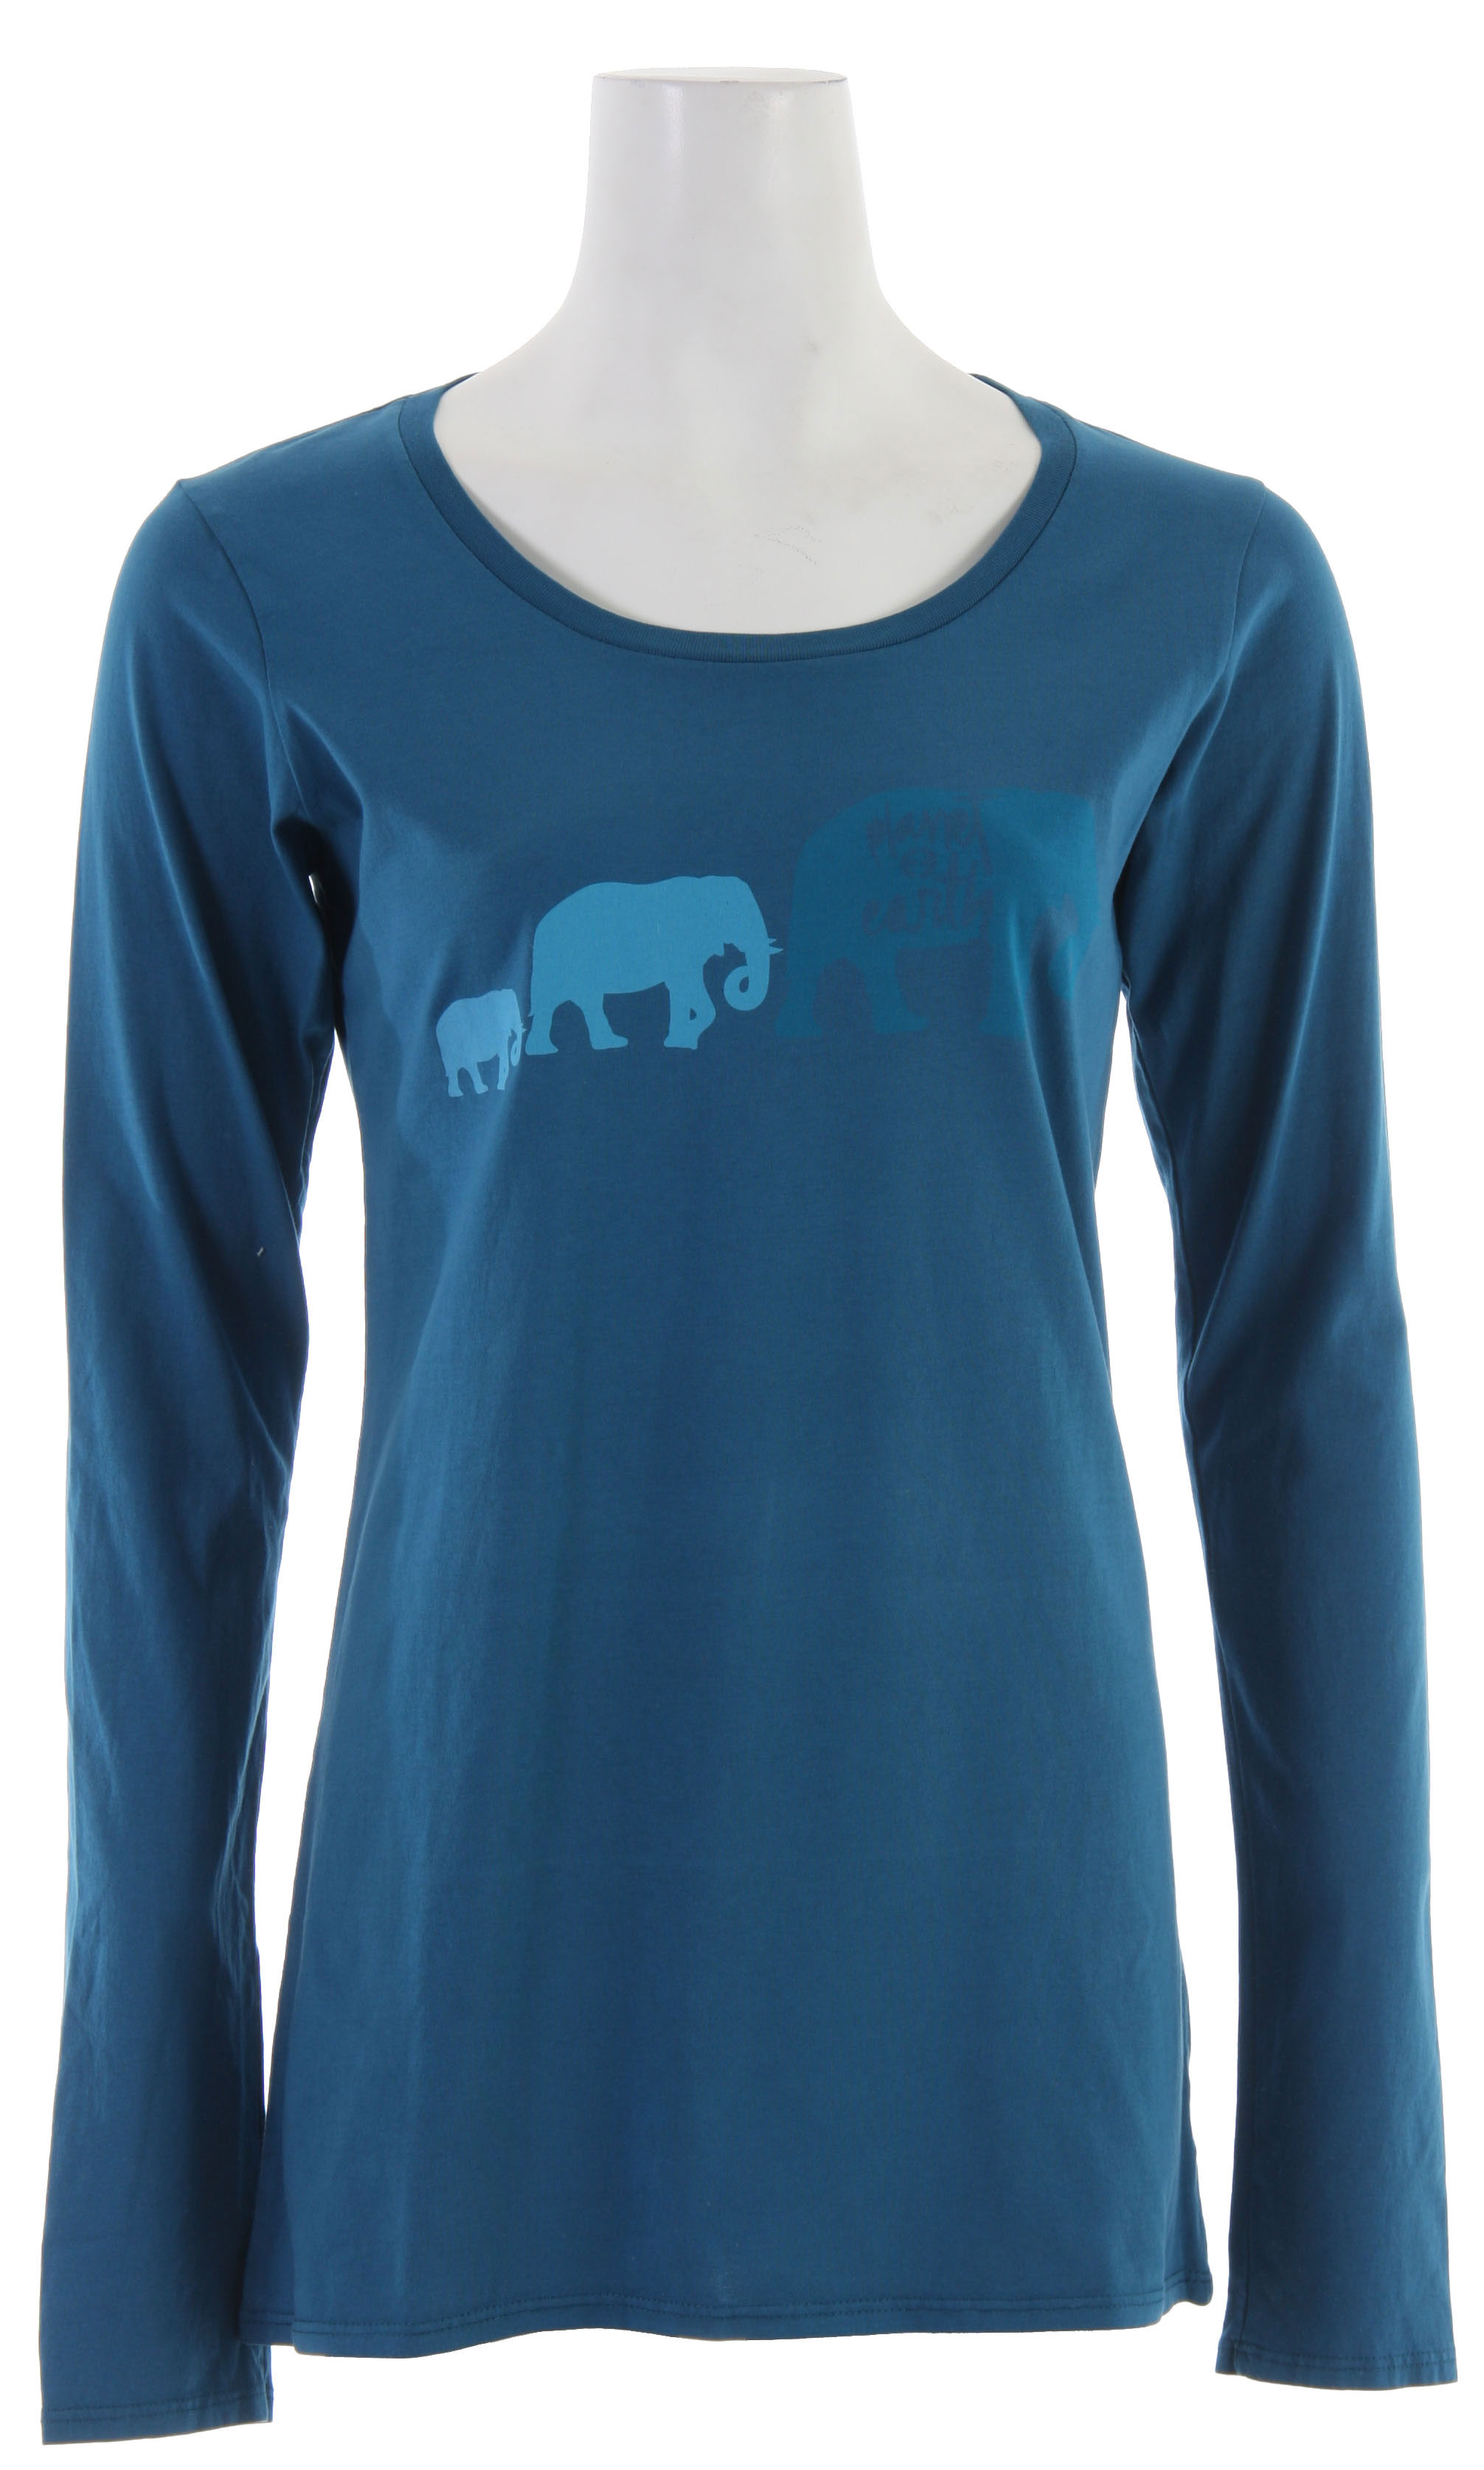 The Planet Earth Elie L/S T-Shirts are 51% organic cotton blended with 49% virgin cotton and embellished with formaldehyde-free inks and dyes for an environmentally friendly finished product. - $10.95